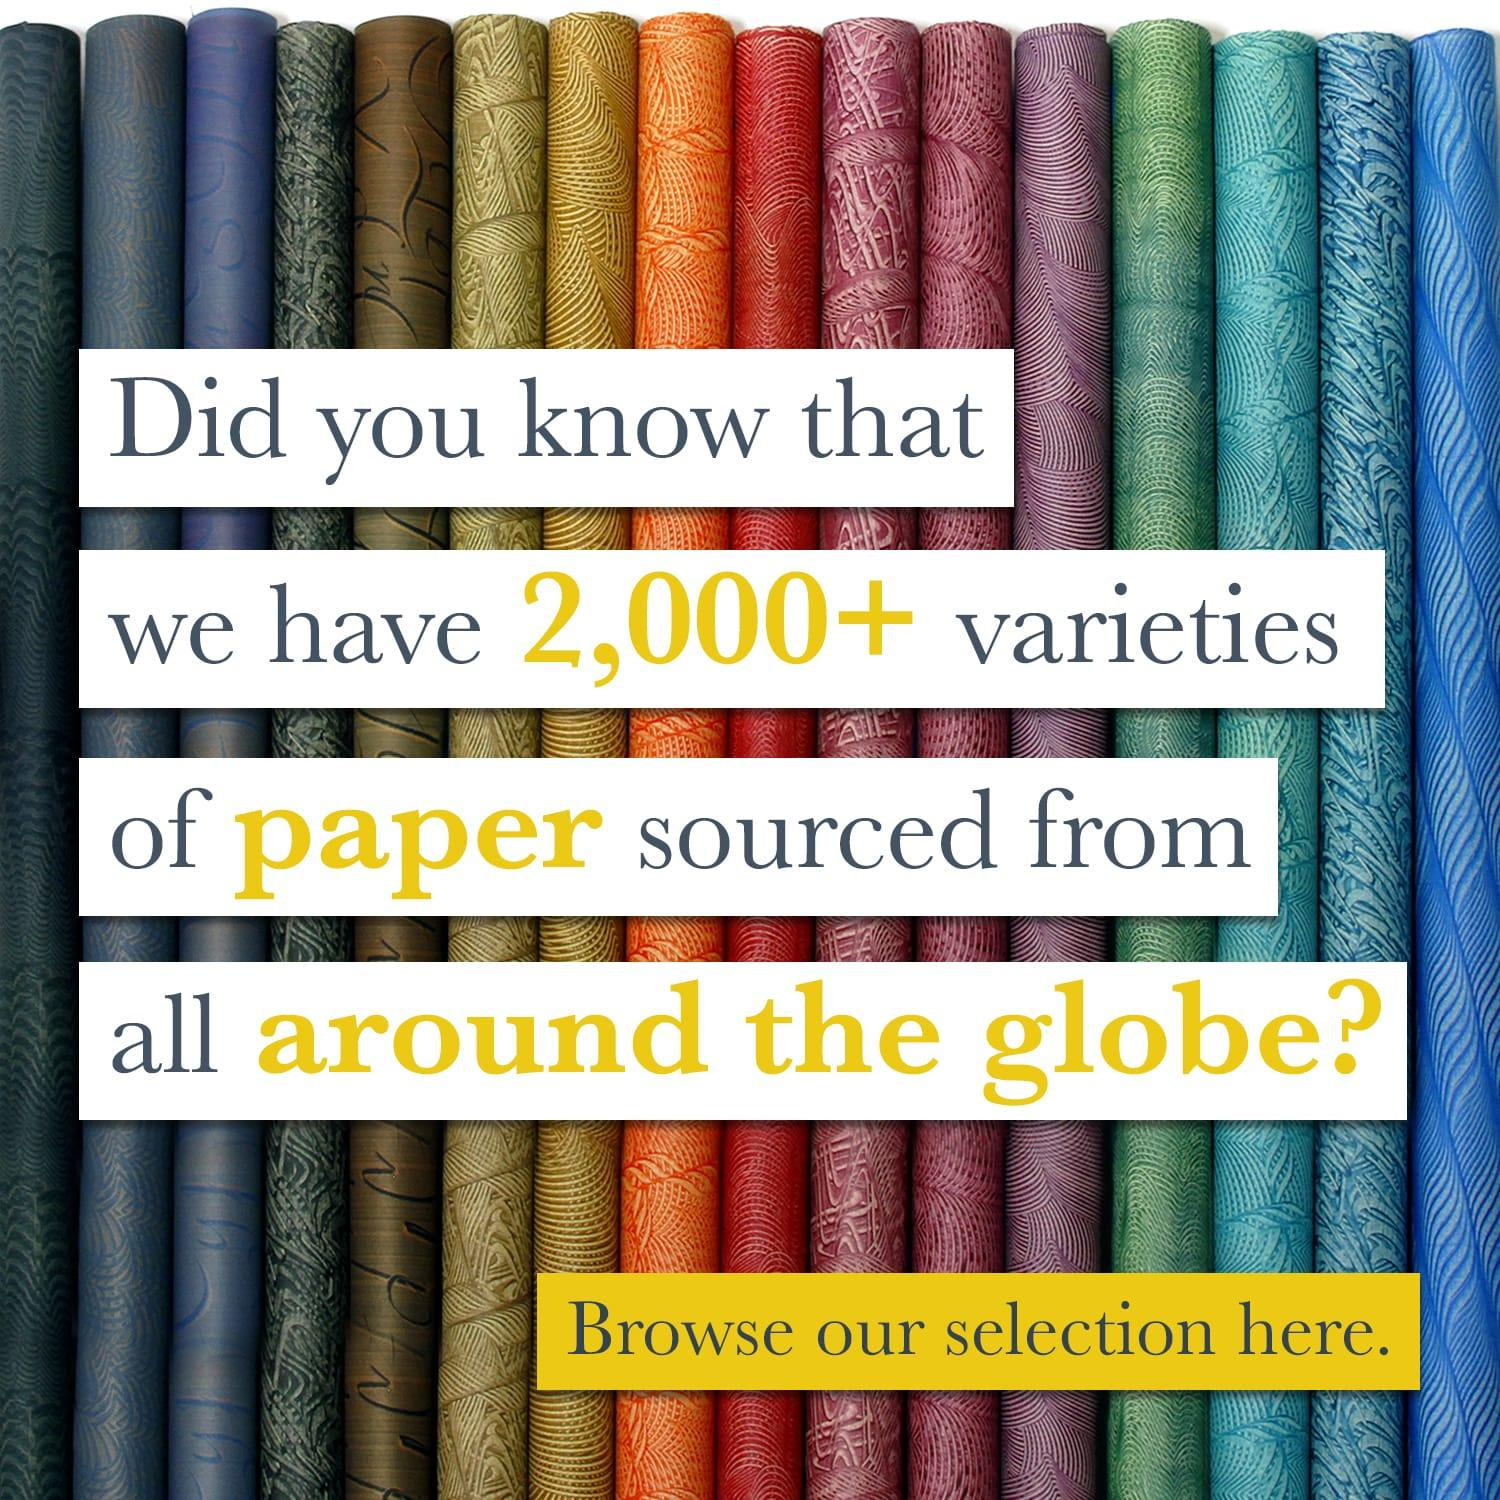 Did you know that we have 2000+ varieties of paper?